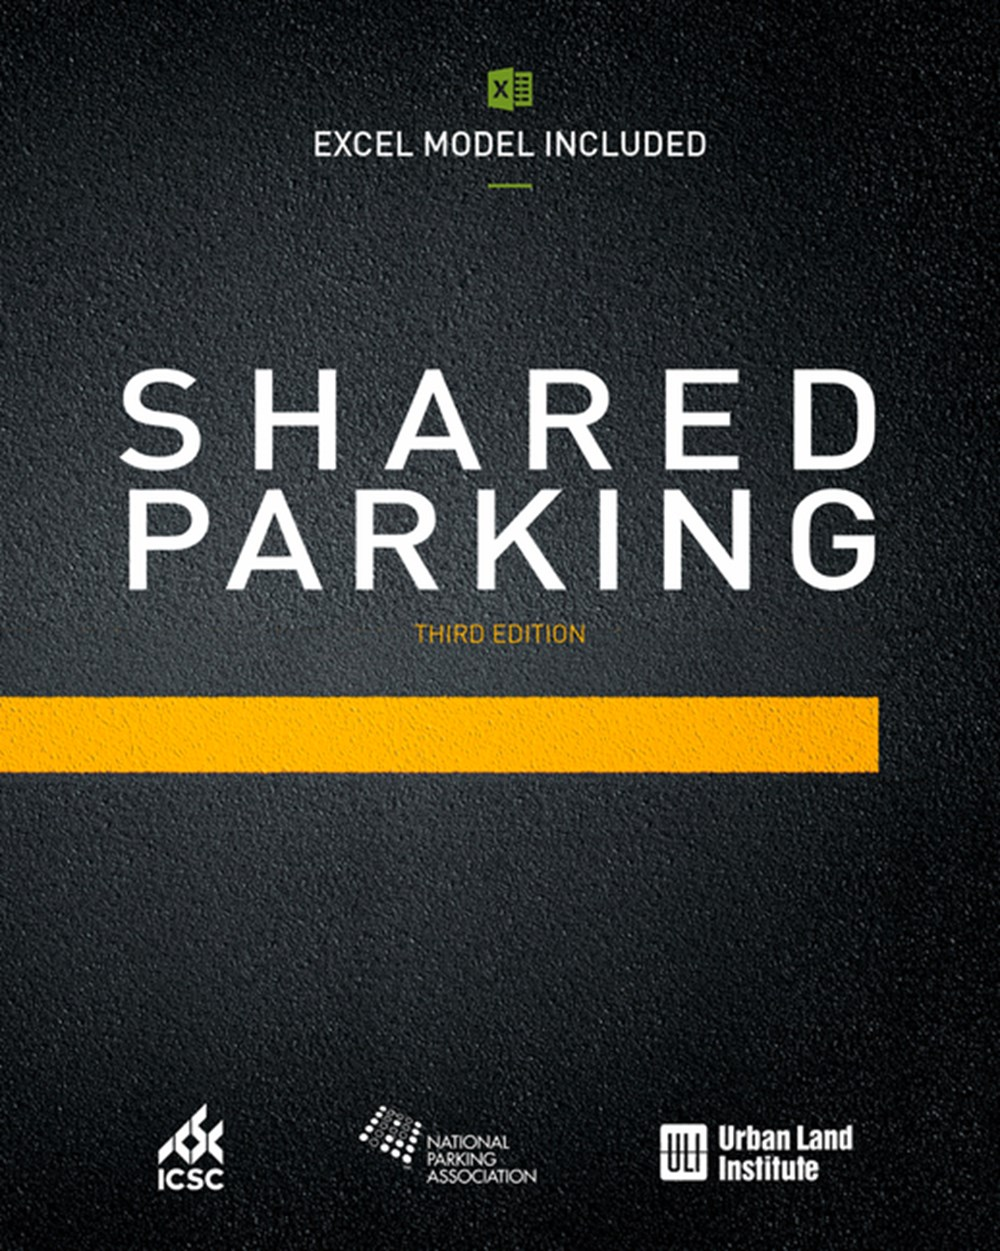 Shared Parking (Excel Model Included) Third Edition